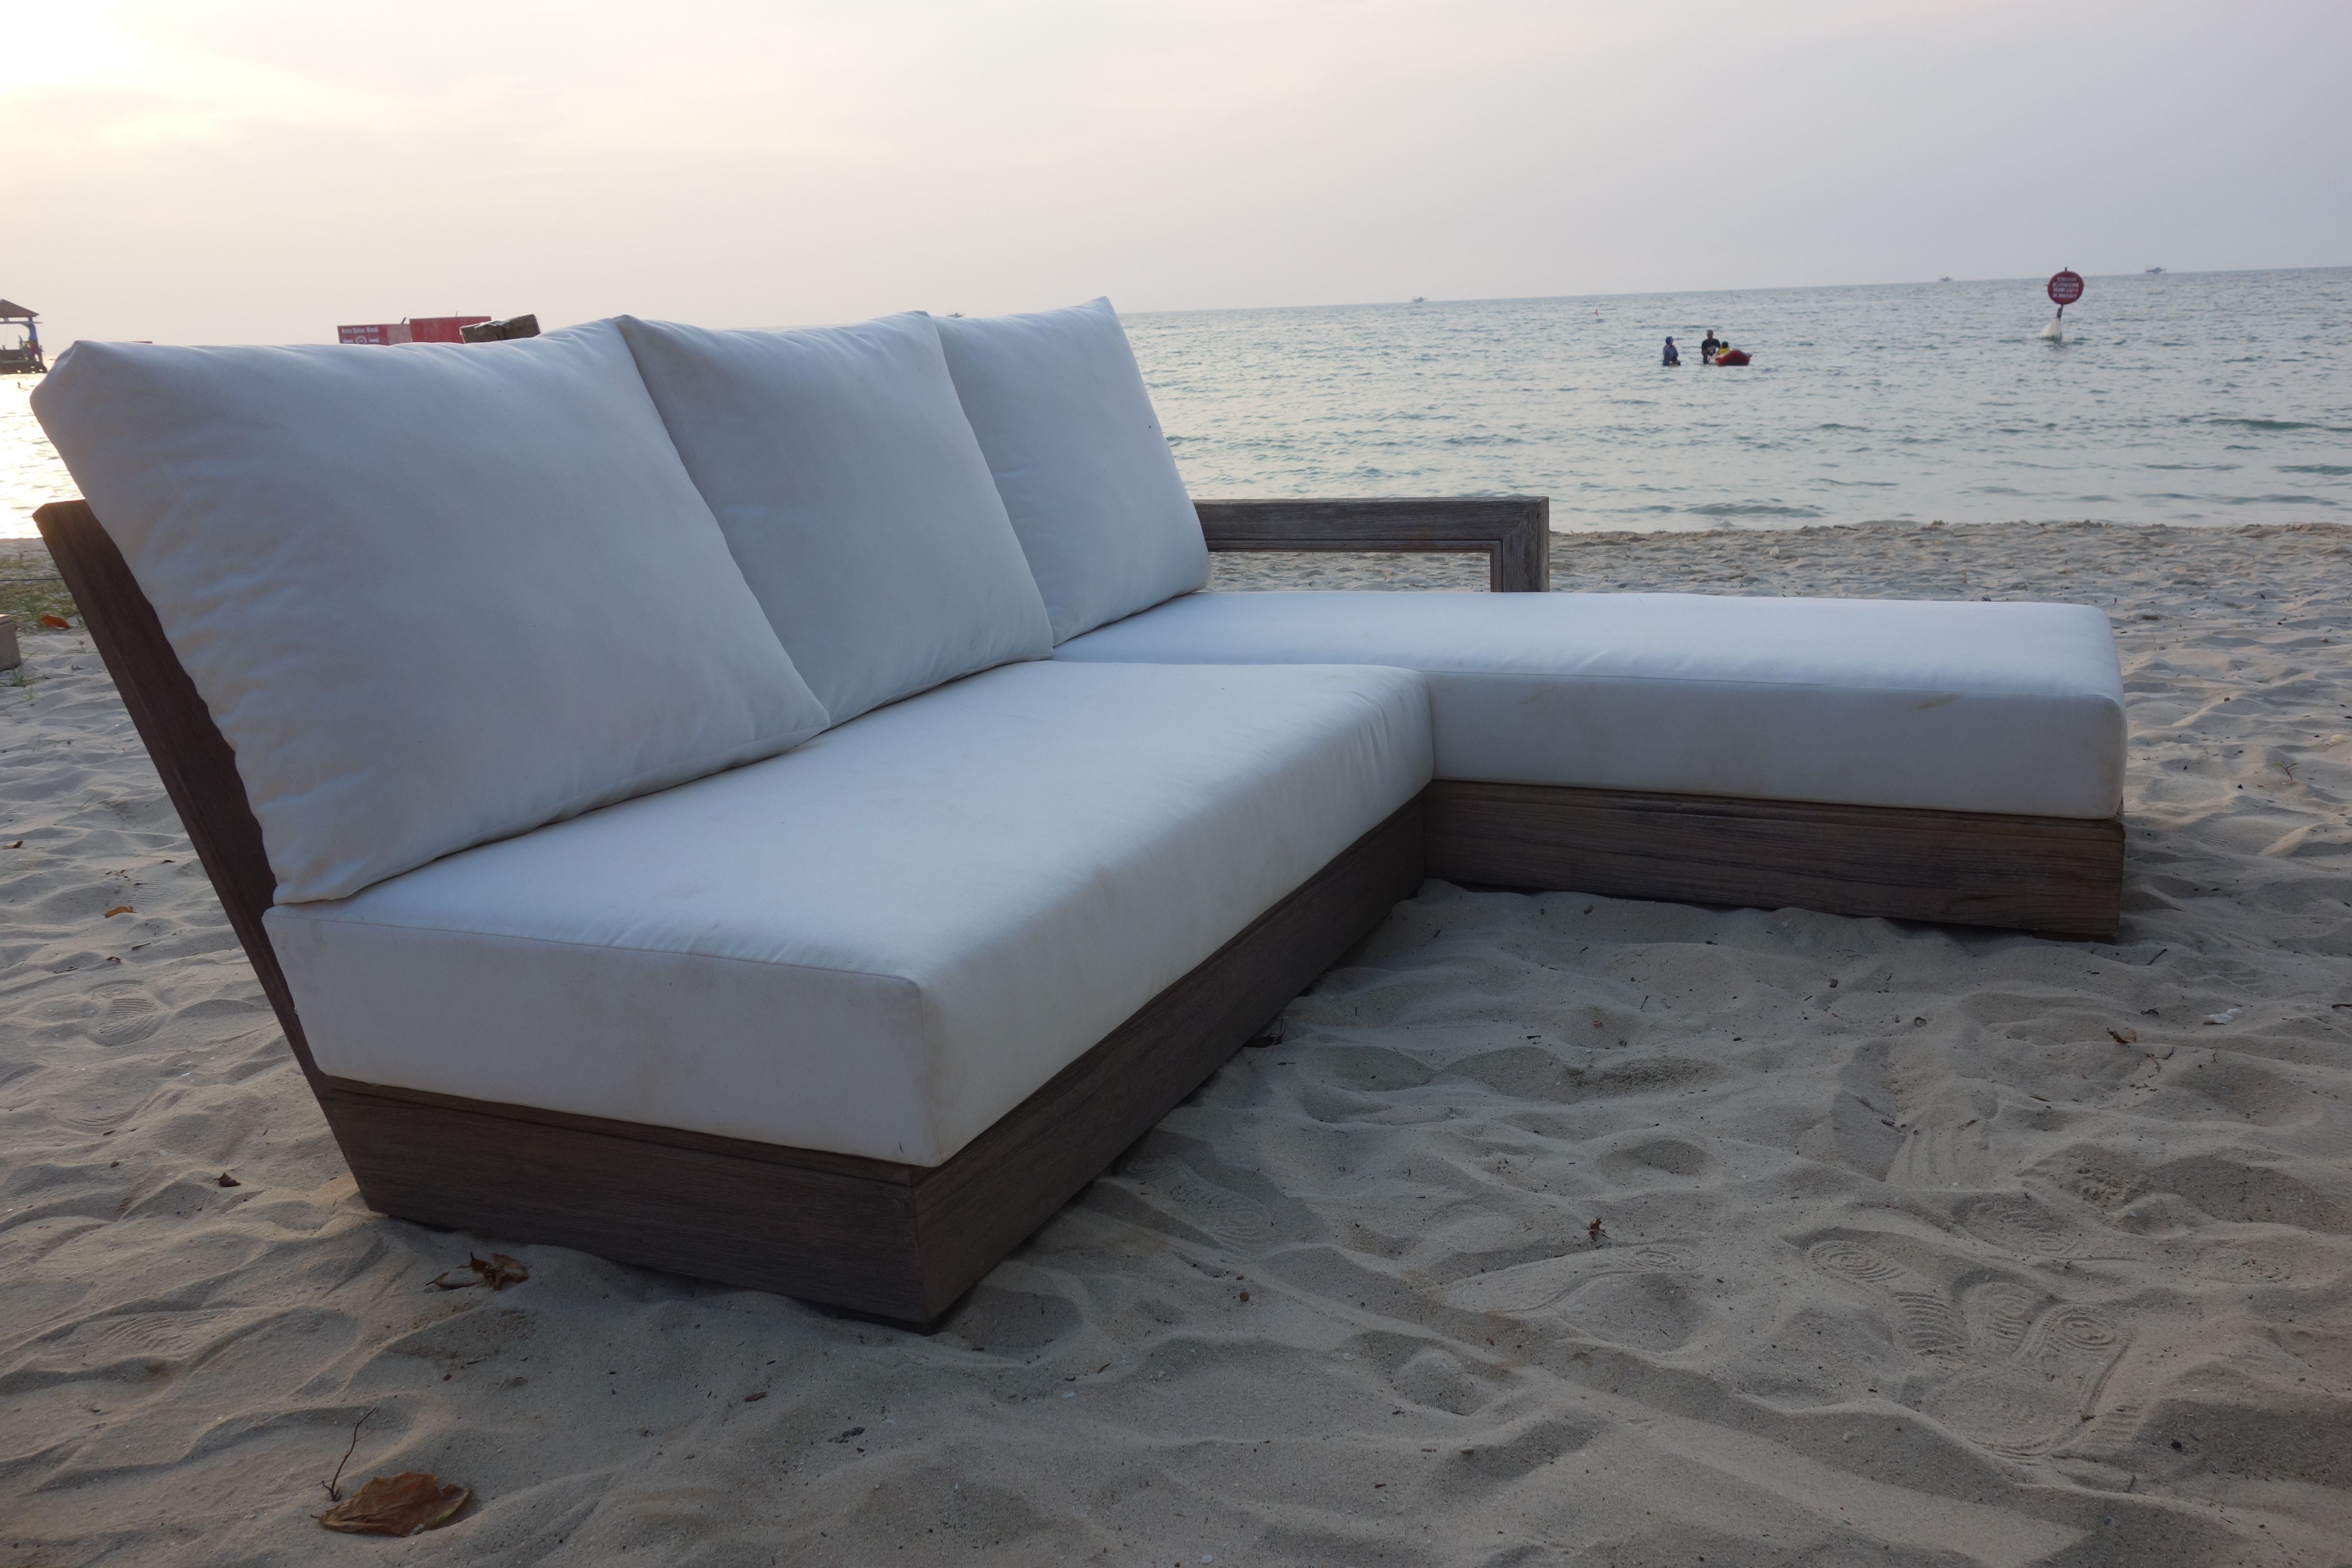 Teak Patio Furniture Los Angeles Wholer In Woodland Hills Ca We Accept Custom Order On Furnitures And Cushions